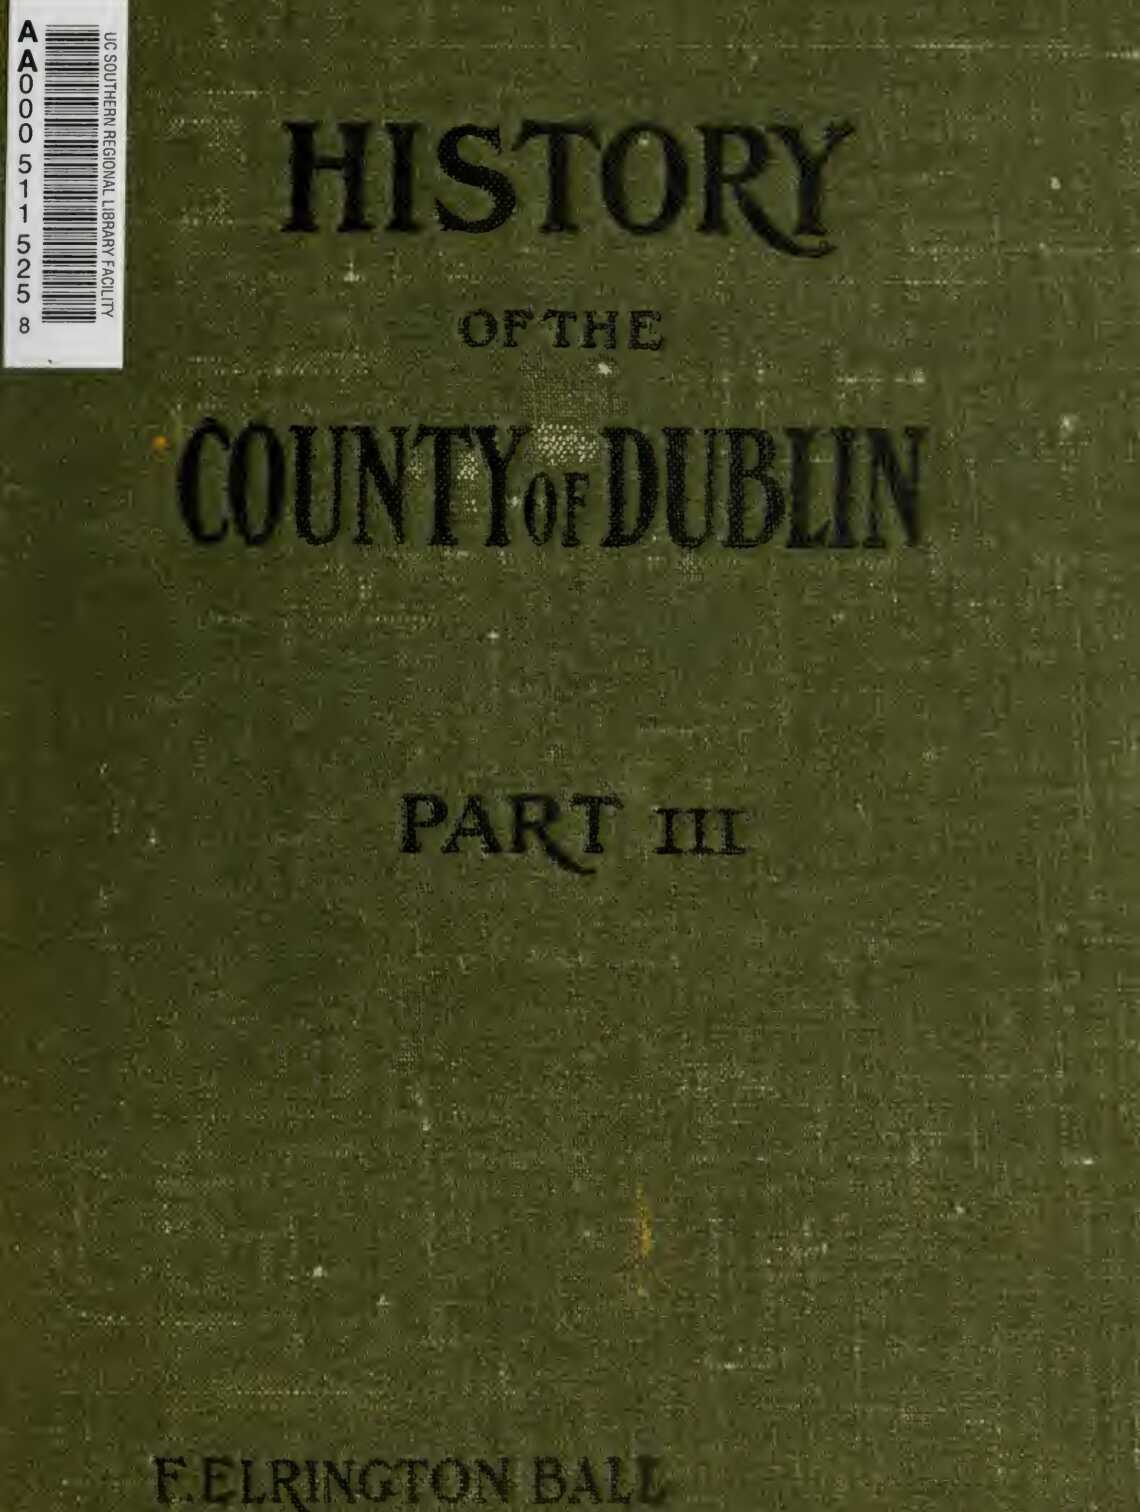 History of the County of Dublin